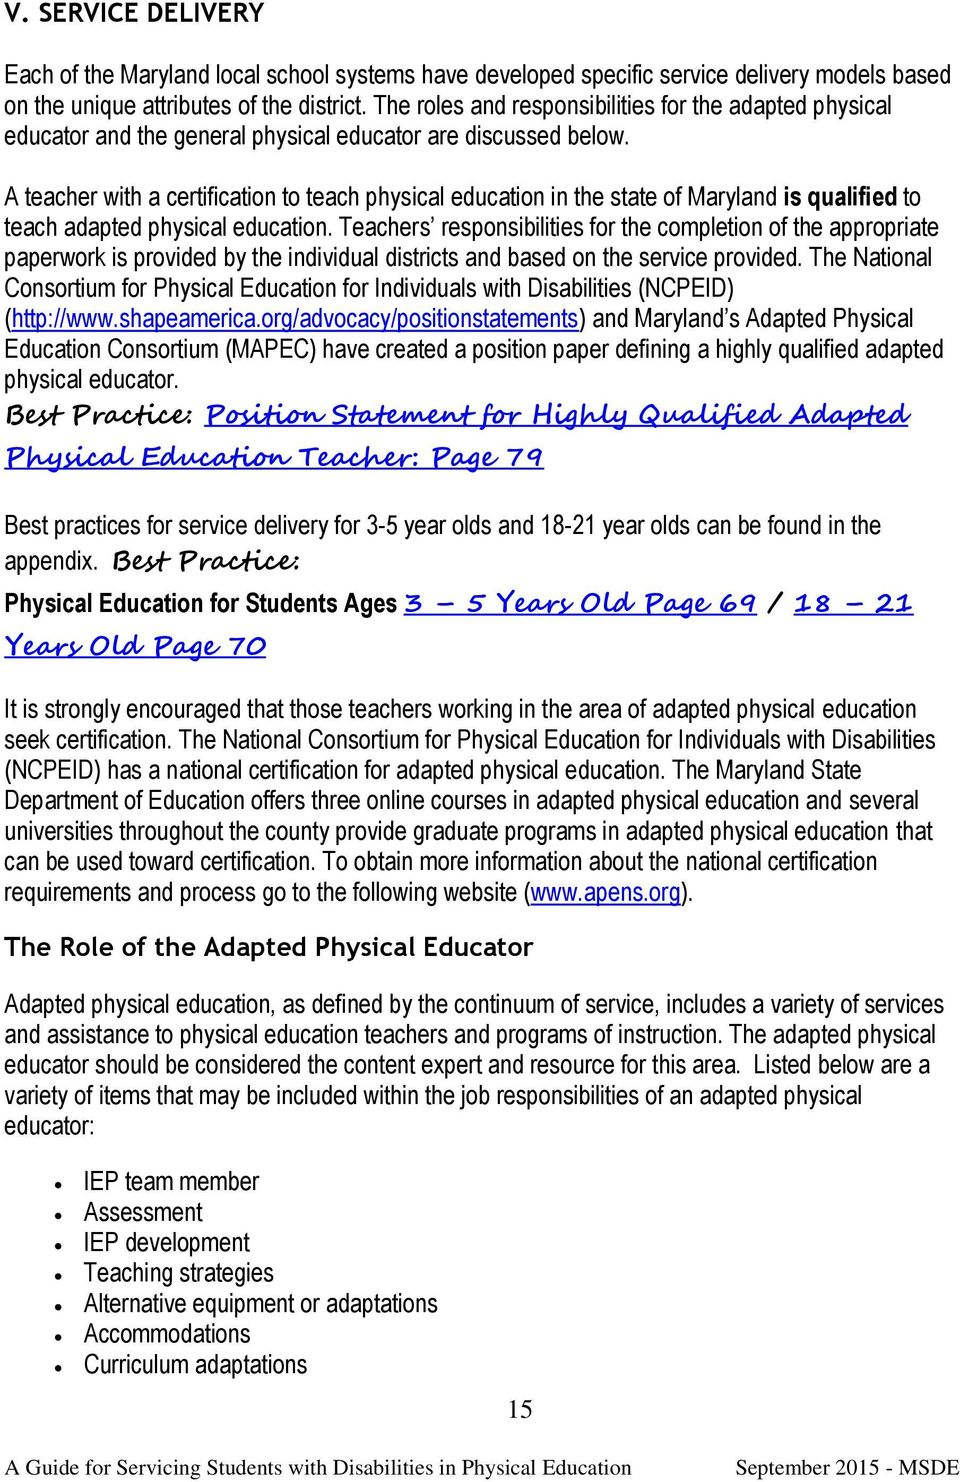 Adaptive Physical Education Certification Best Education 2018